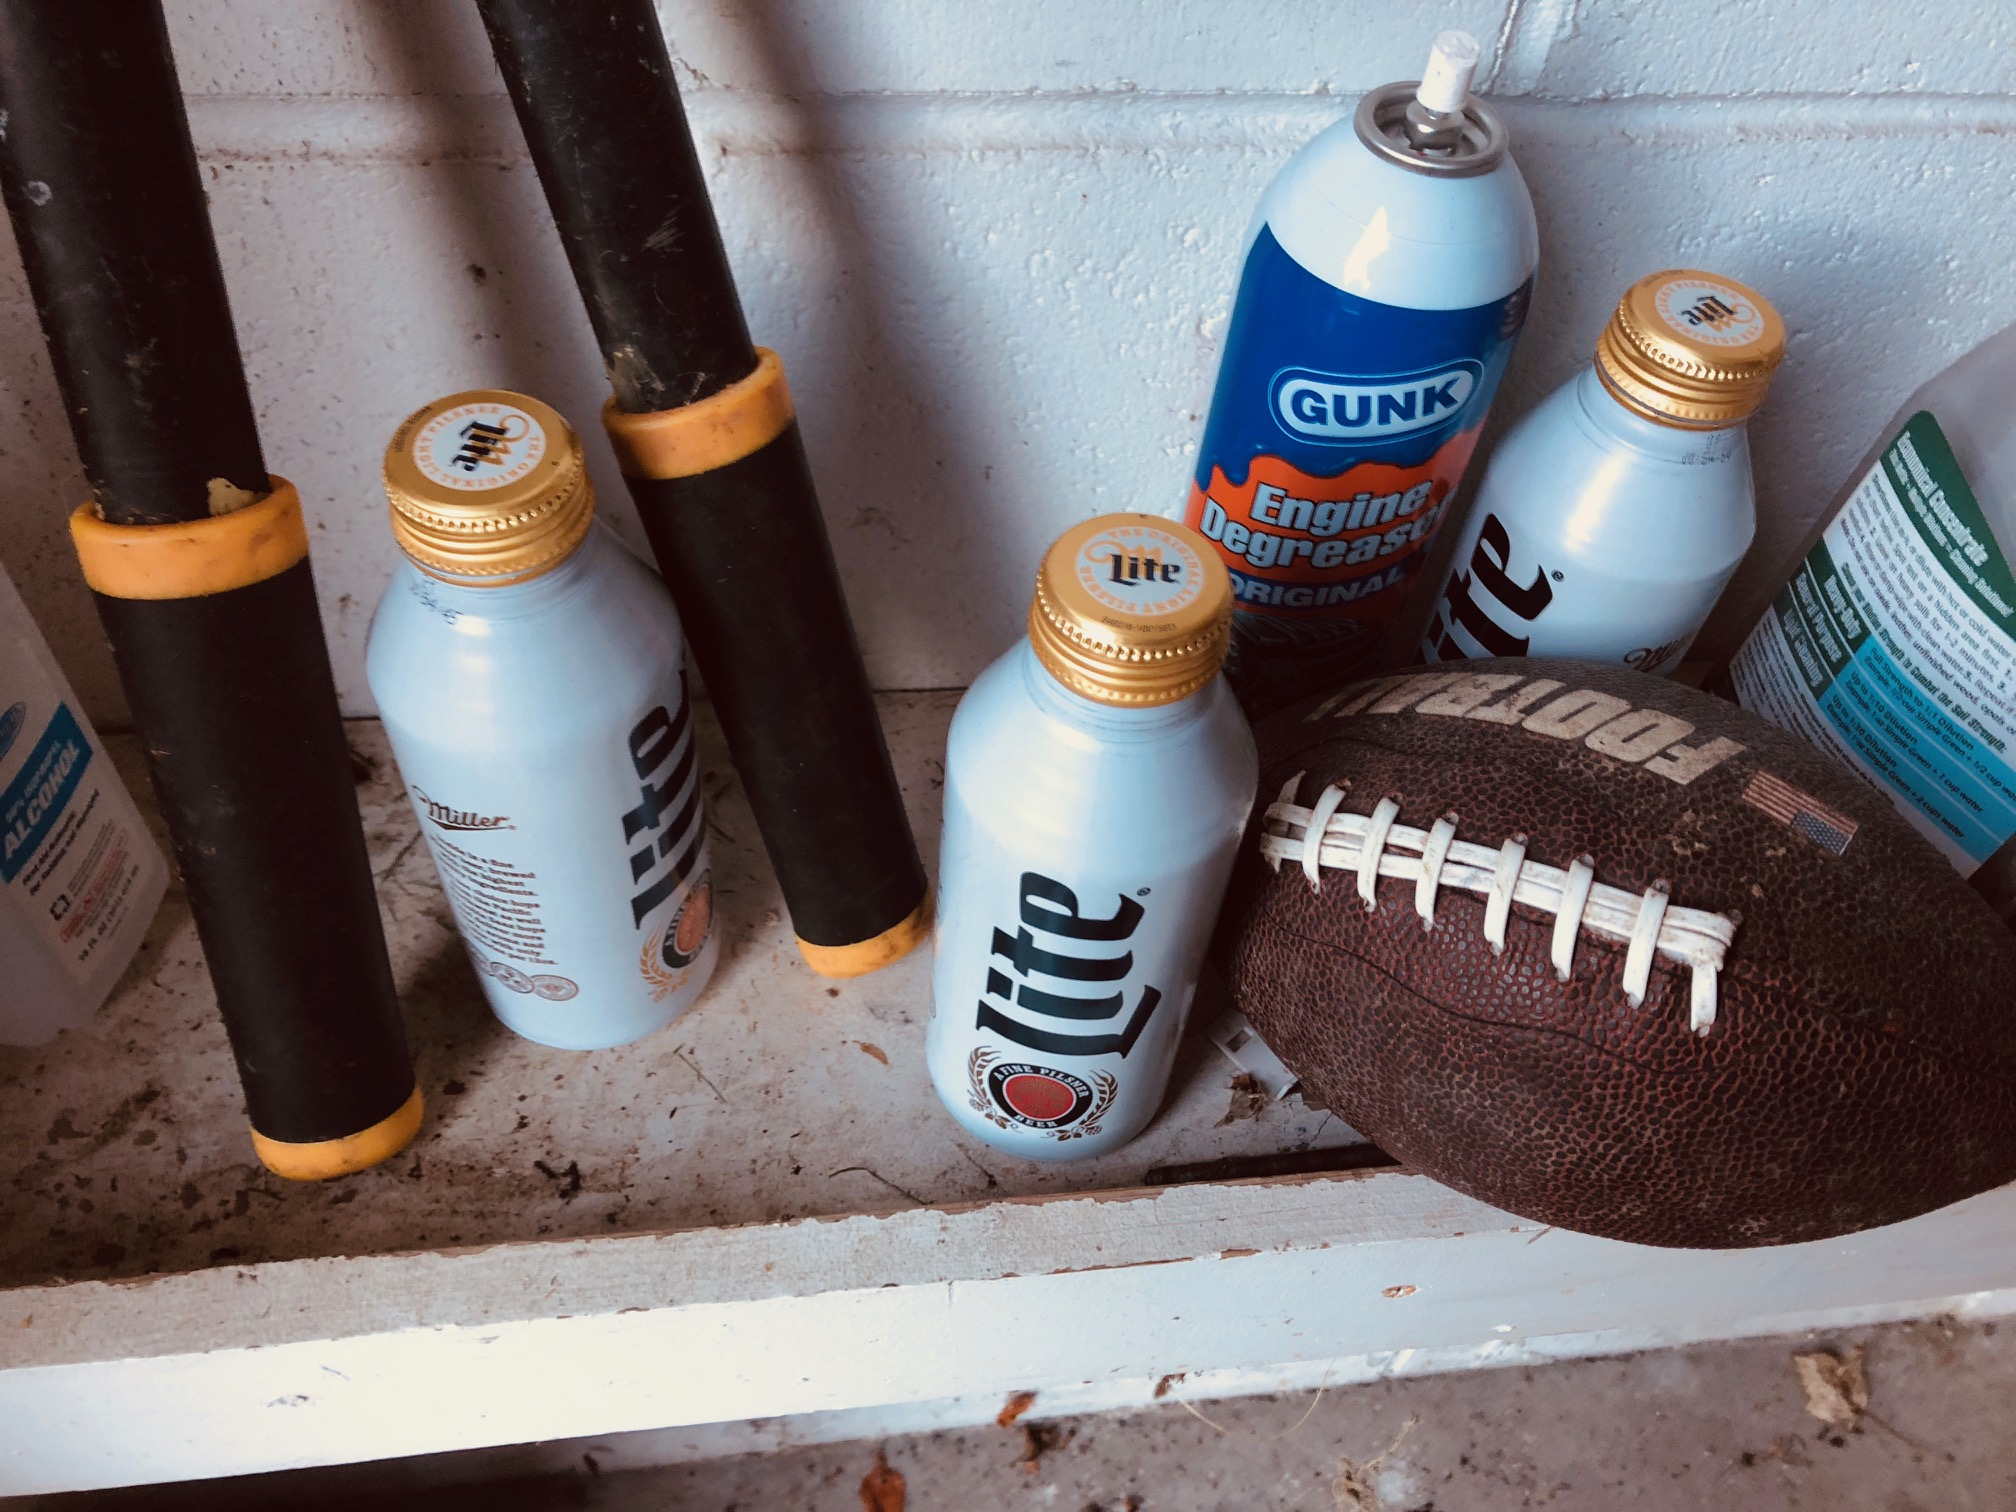 Engine de-greaser, solvents, a pigskin and a trio of empties.